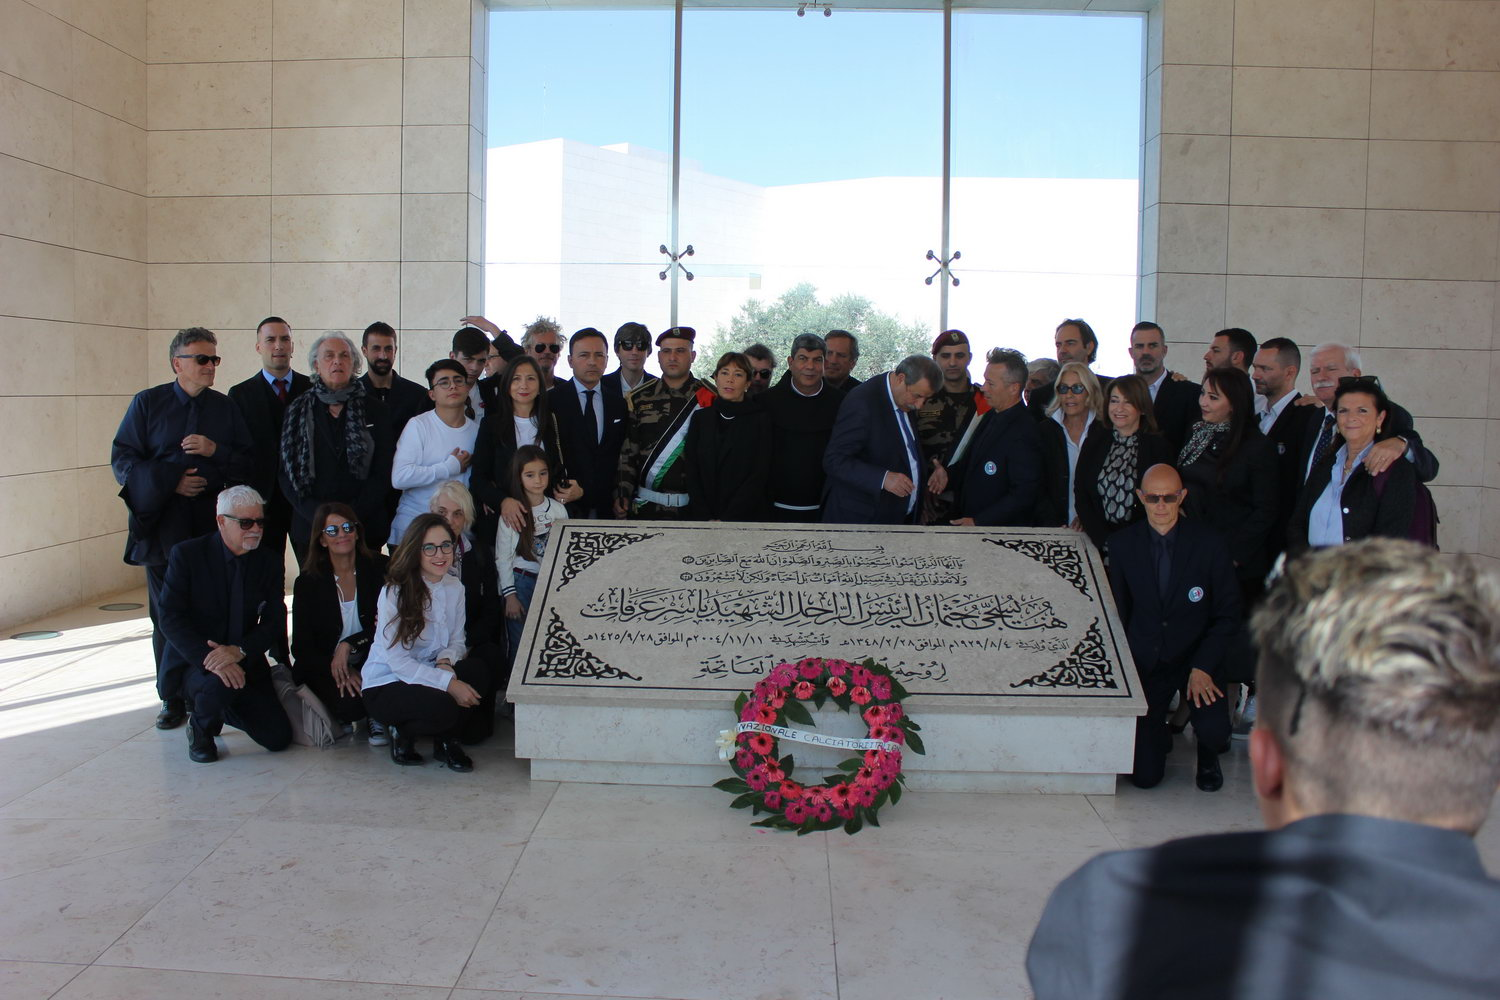 Italian Delegation Lays Wreath at Yasser Arafat Mausoleum and Visits Museum